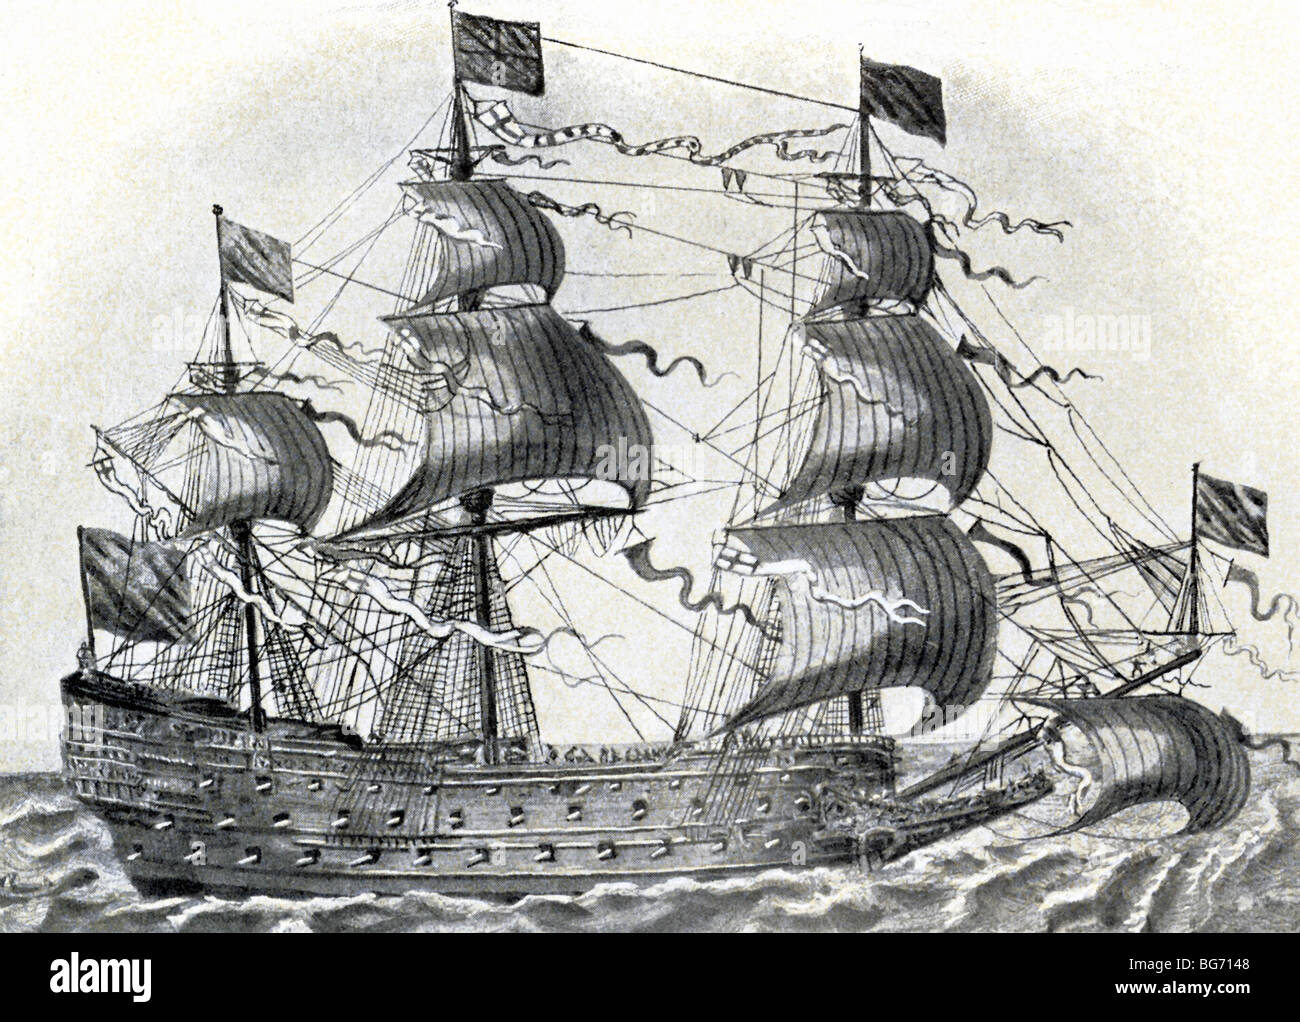 This English warship belonged to the class known as ship-of-the-line, a fighting tactic used at the time (1600s Stock Photo